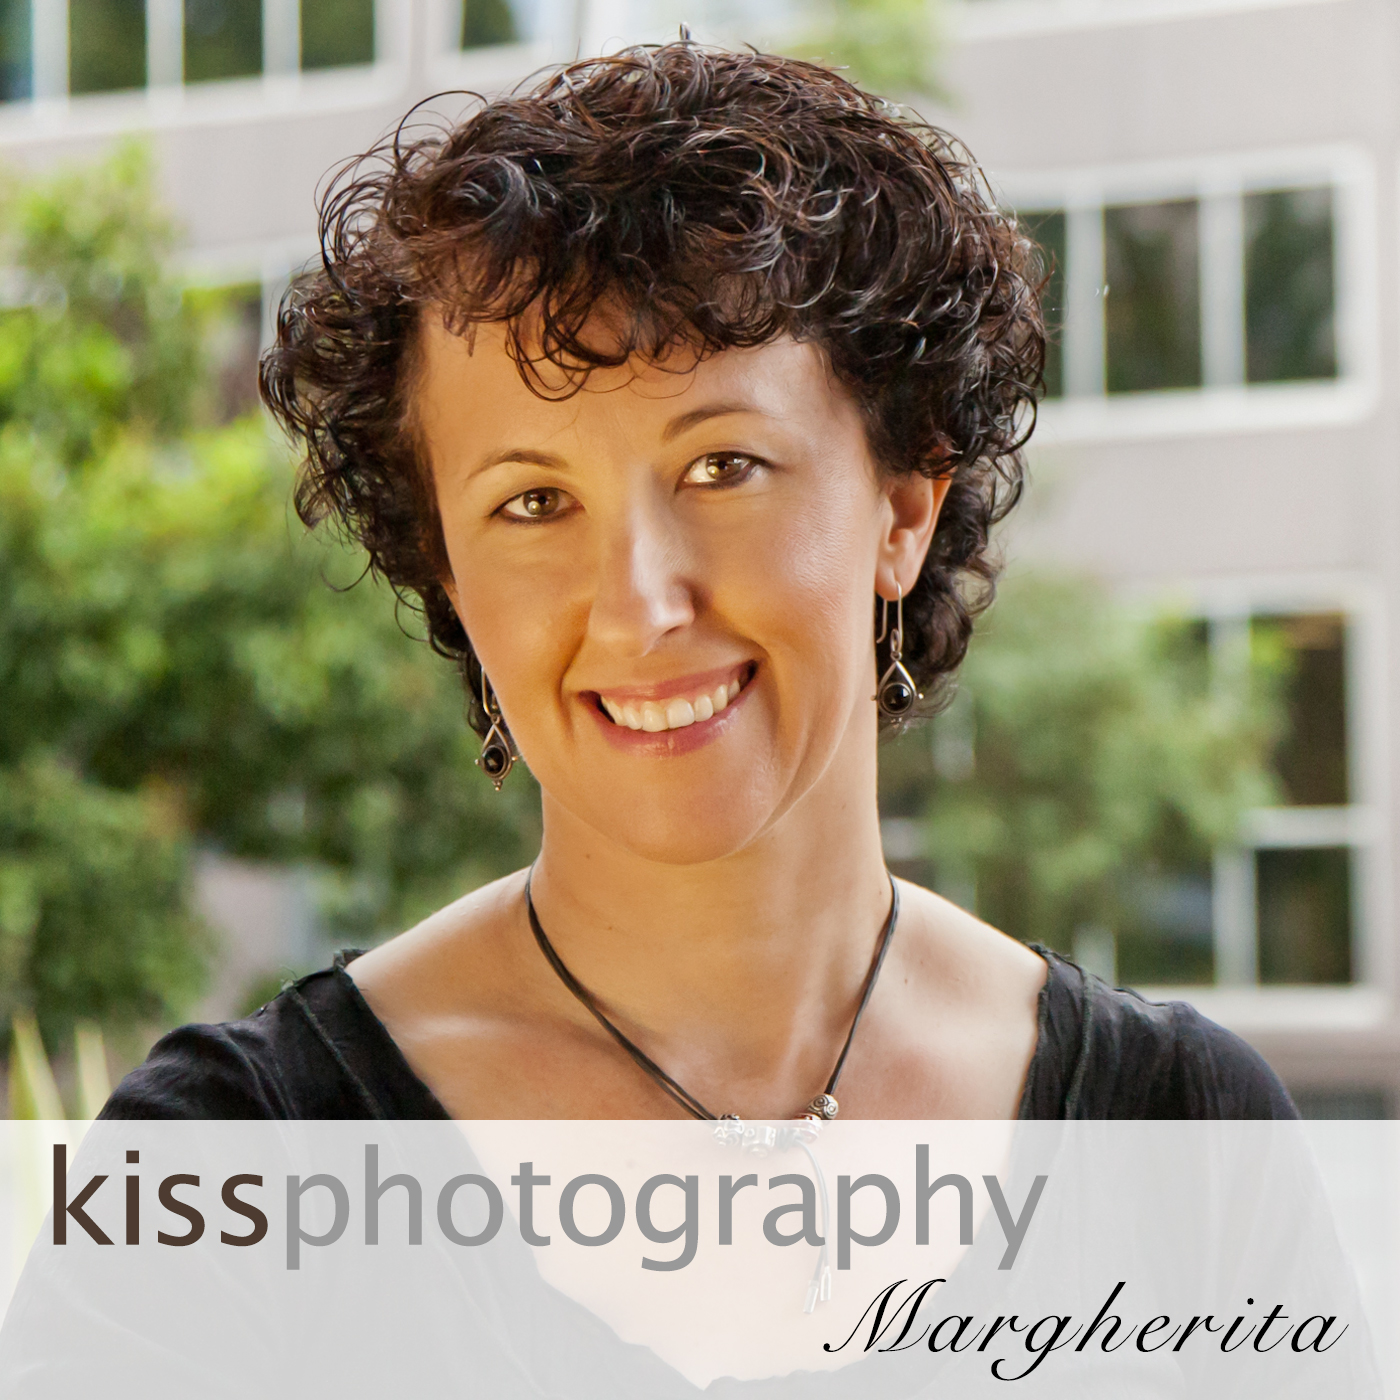 Kiss Photography - Professional Family Photography Brisbane